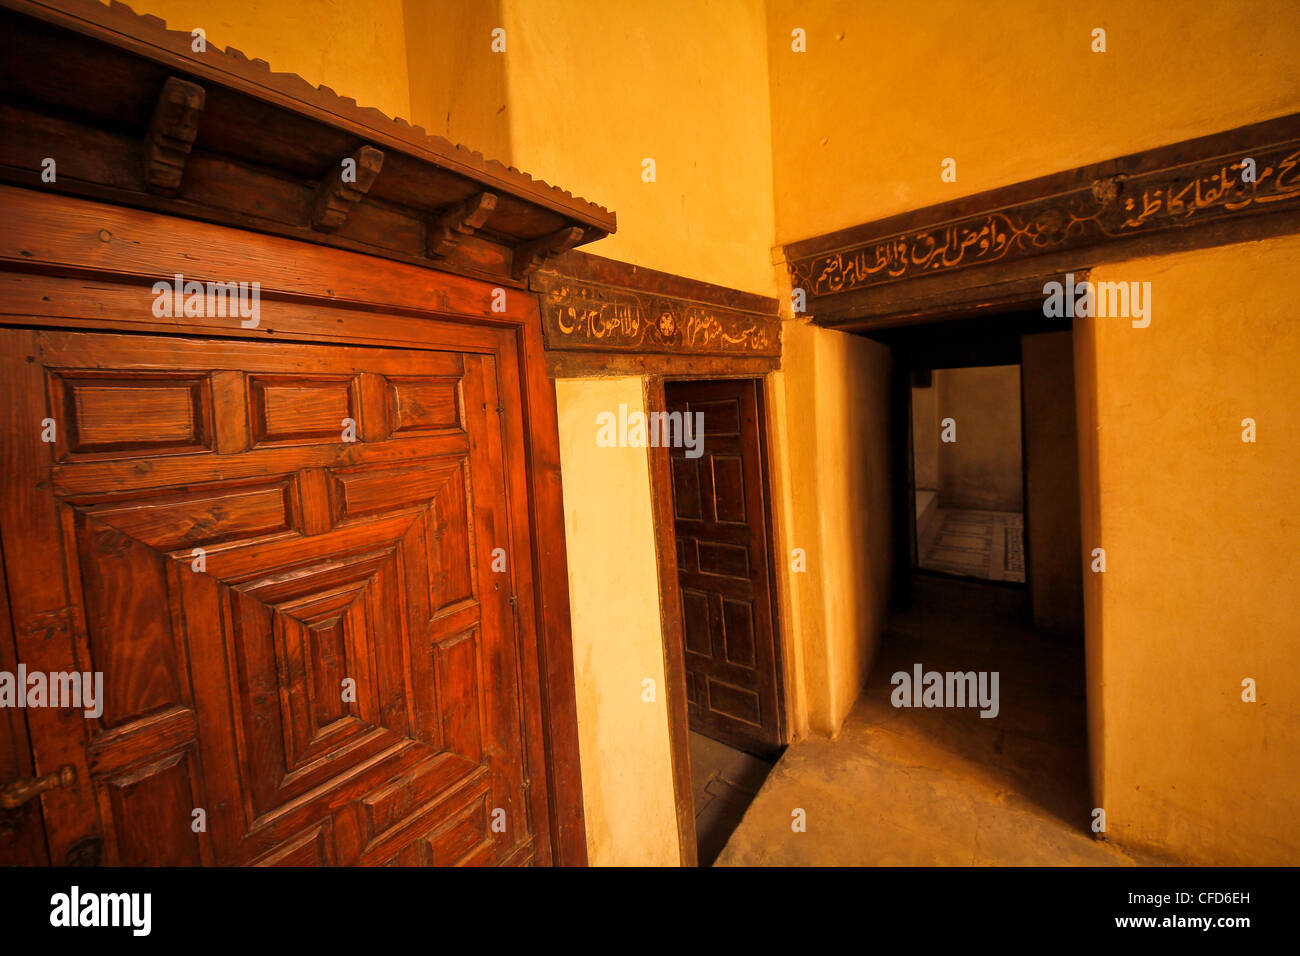 Egypt old Arabic House Cairo Bait el-harawi window door yard architecture - Stock Image